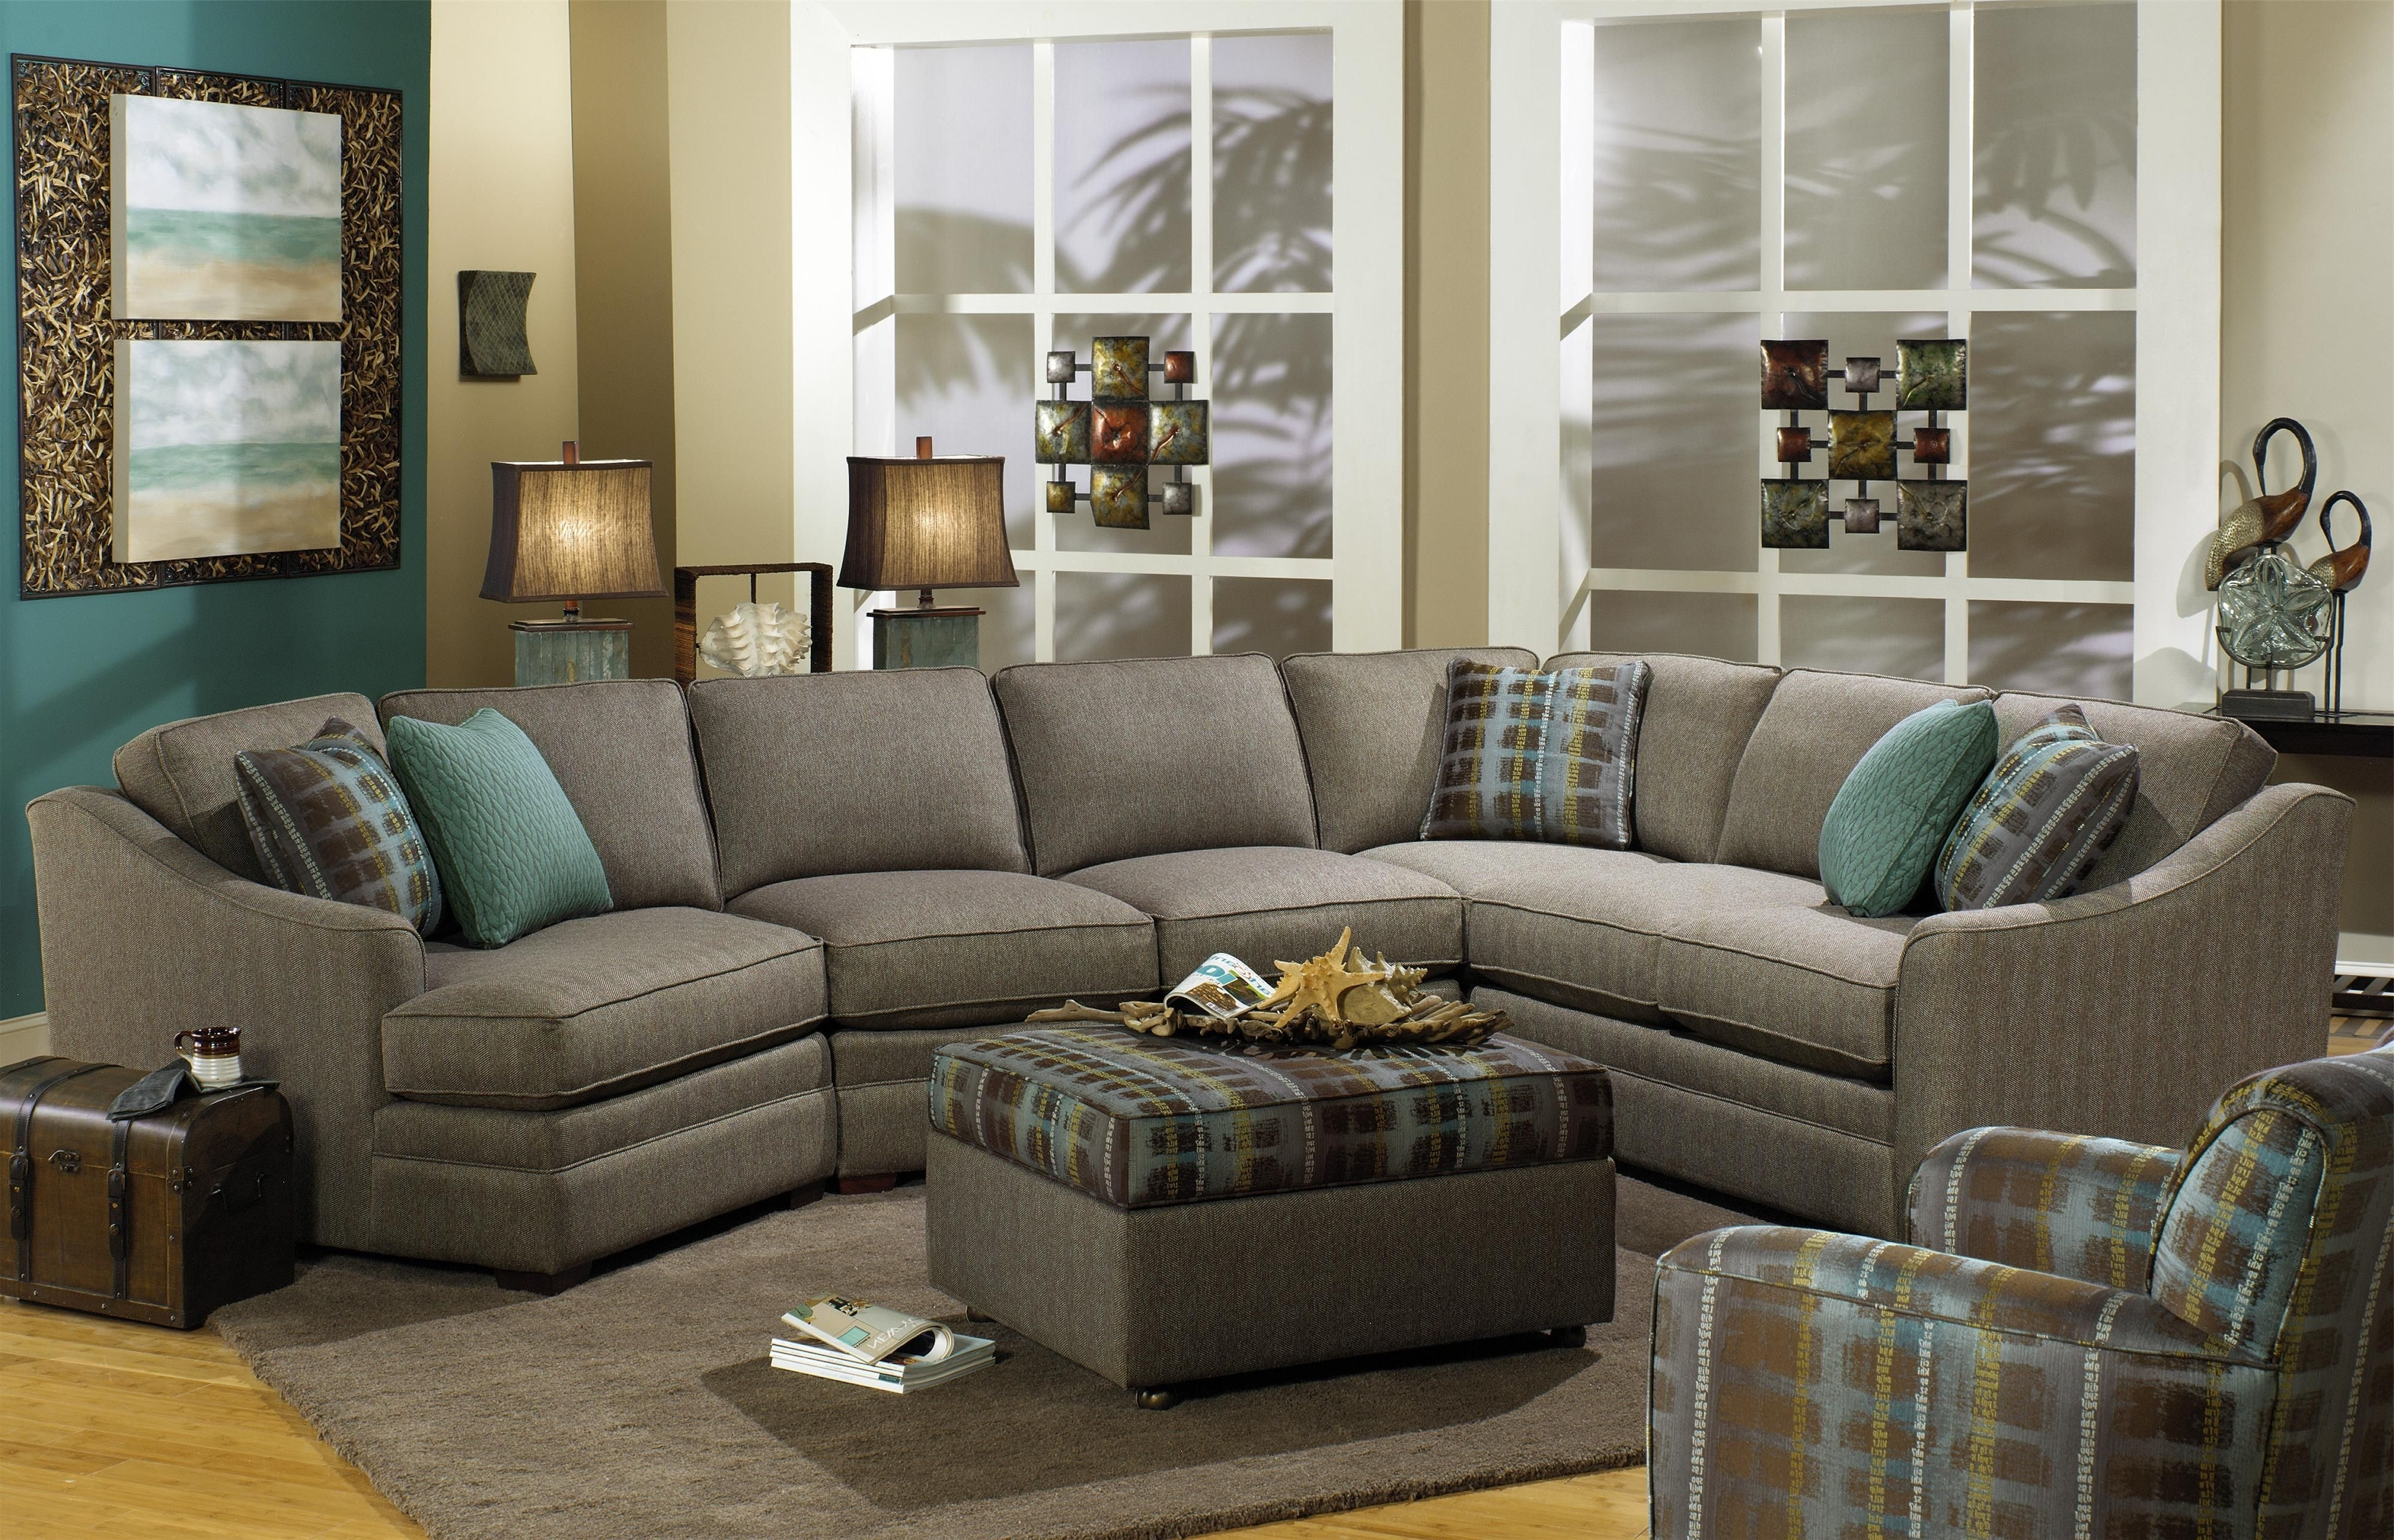 Newest F9 Custom Collection Customizable 3 Piece Sectional With Laf Regarding Sectional Sofas At The Brick (View 13 of 20)